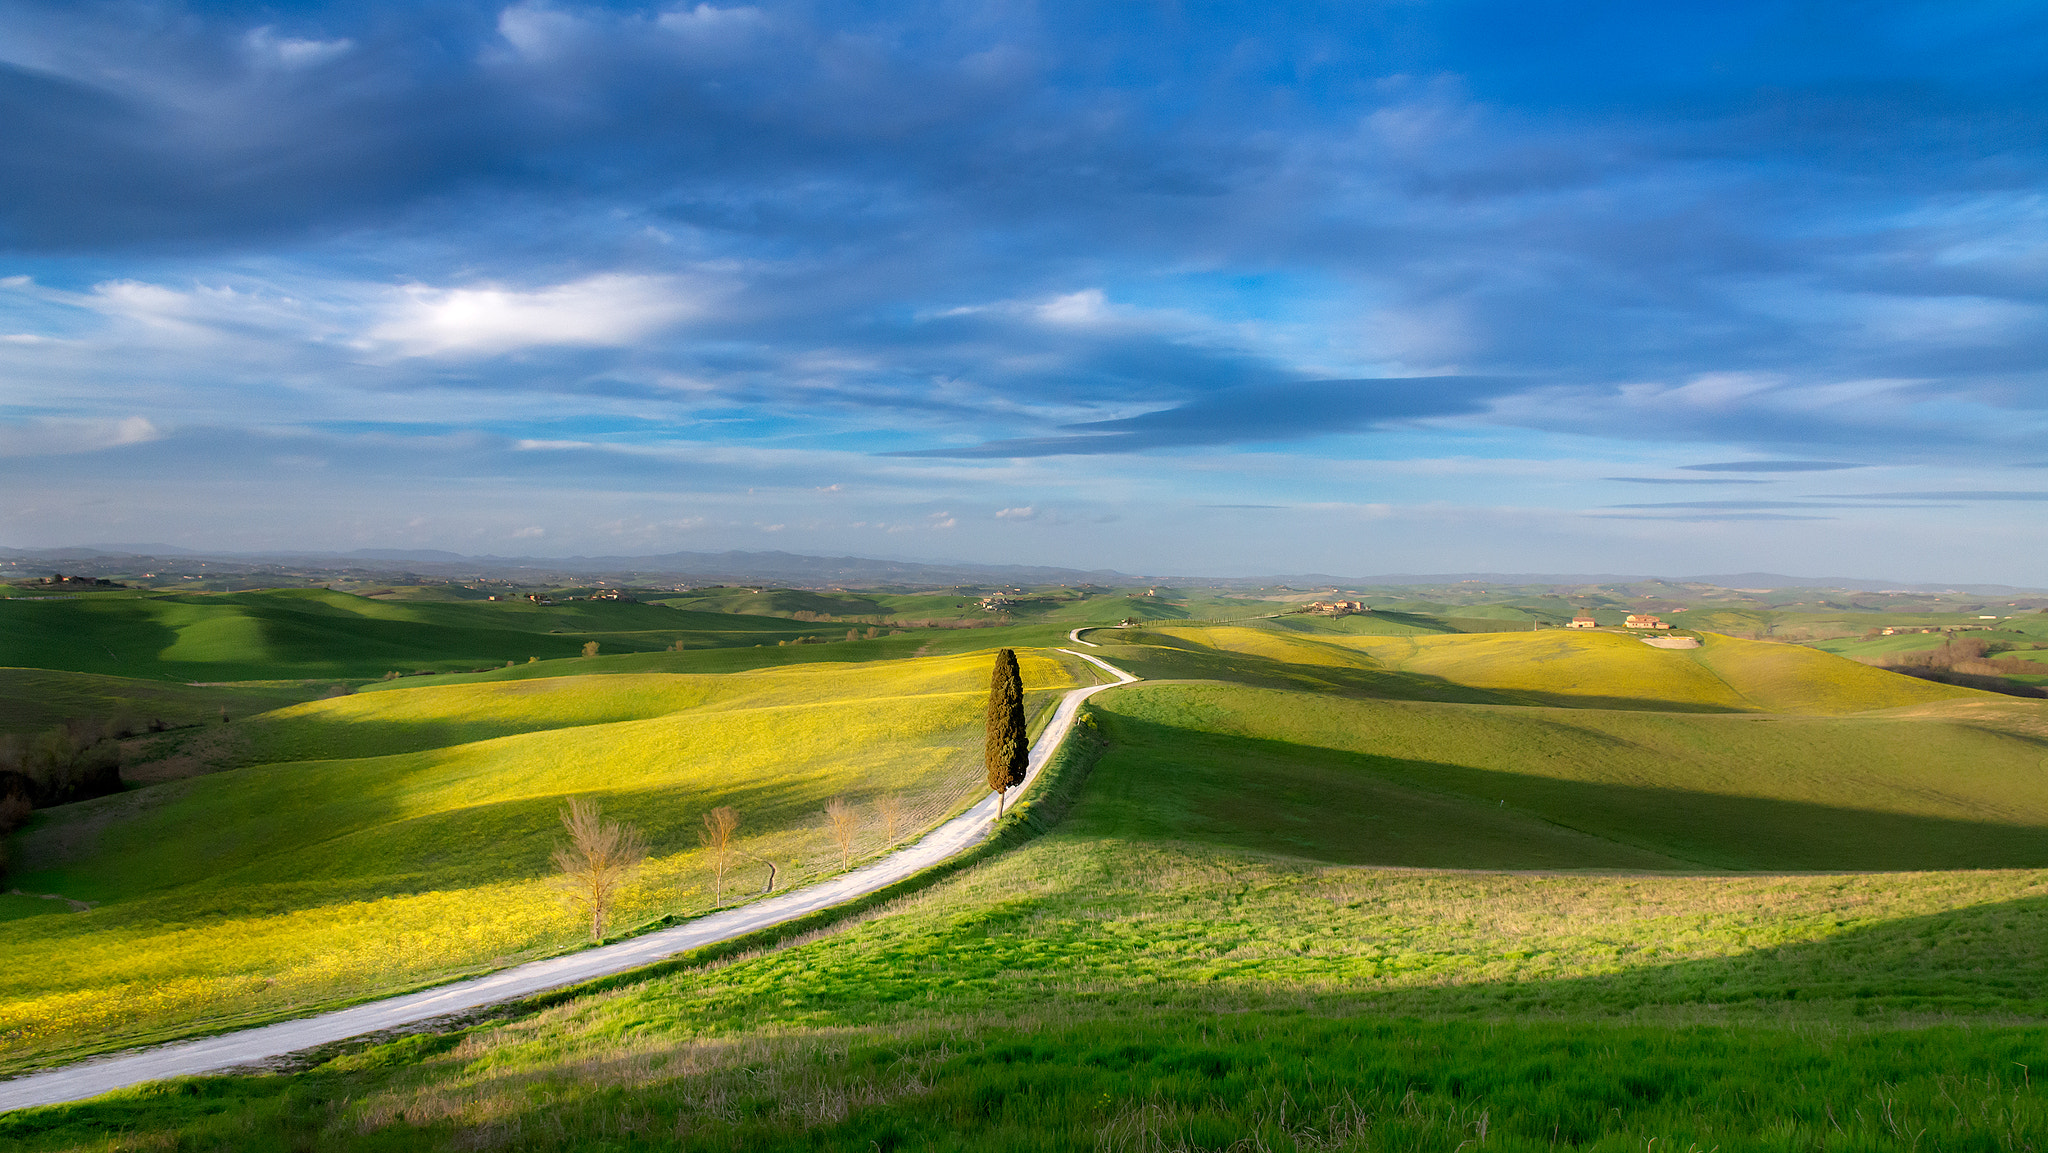 Photograph swett spring by Guido Maria Rustichini on 500px